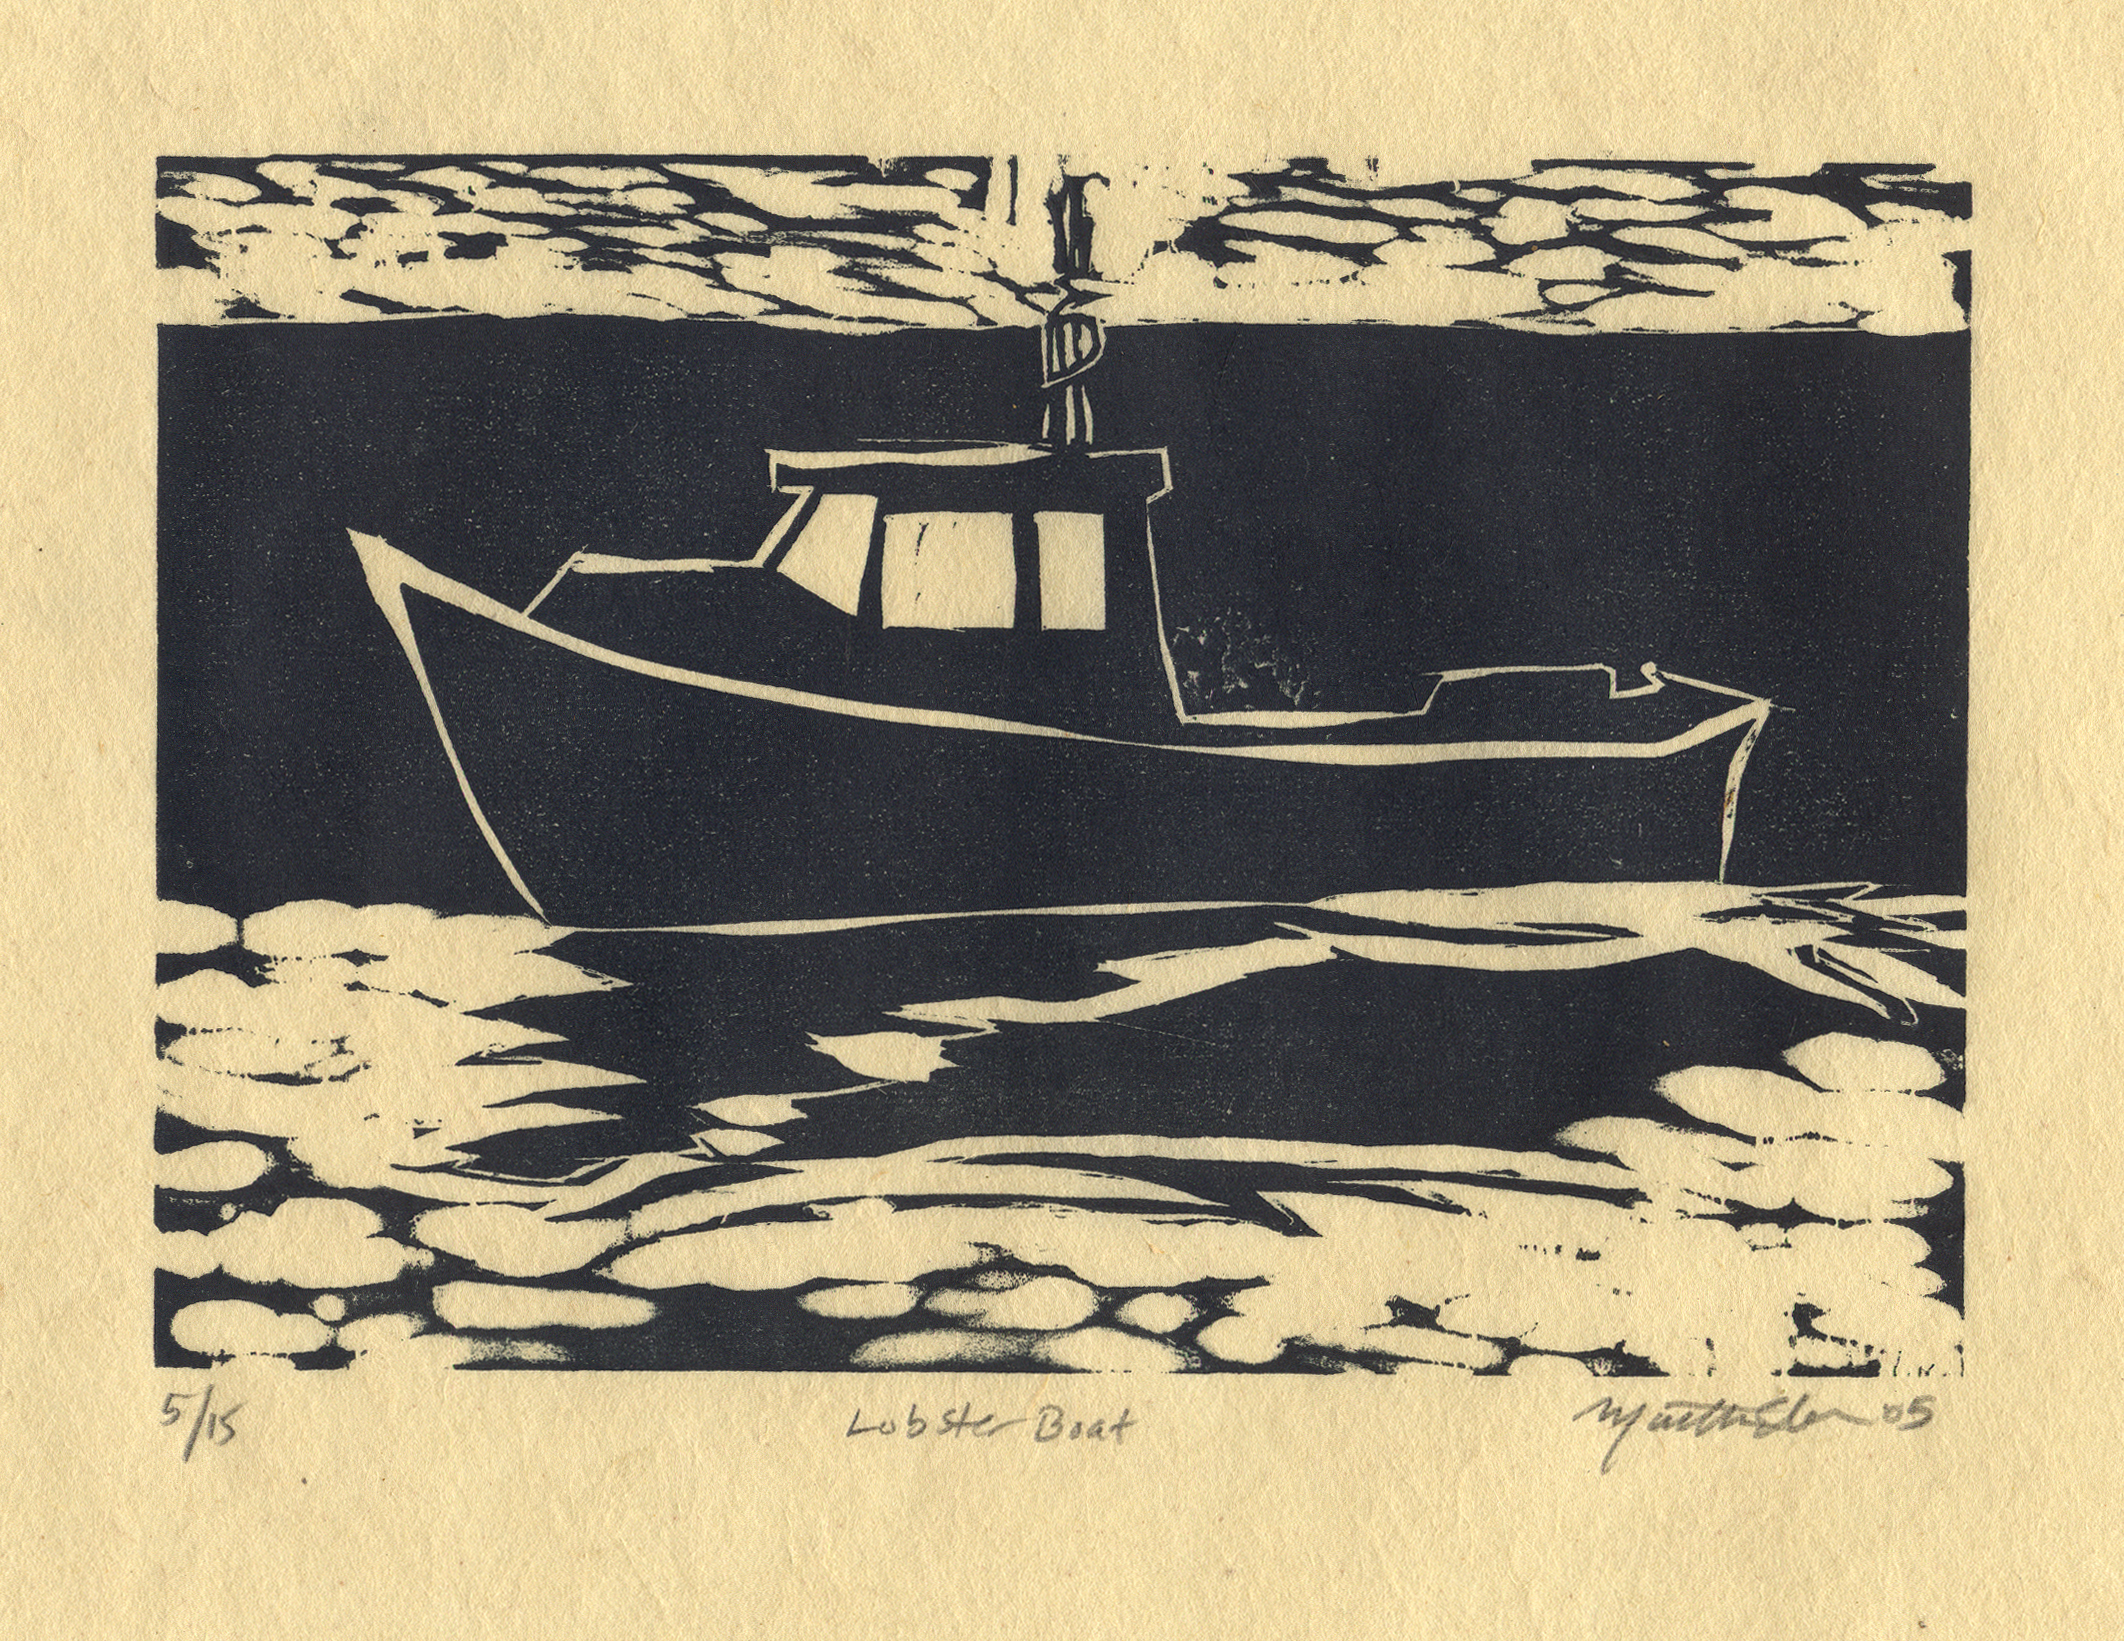 martha ebner lobster boat woodcut